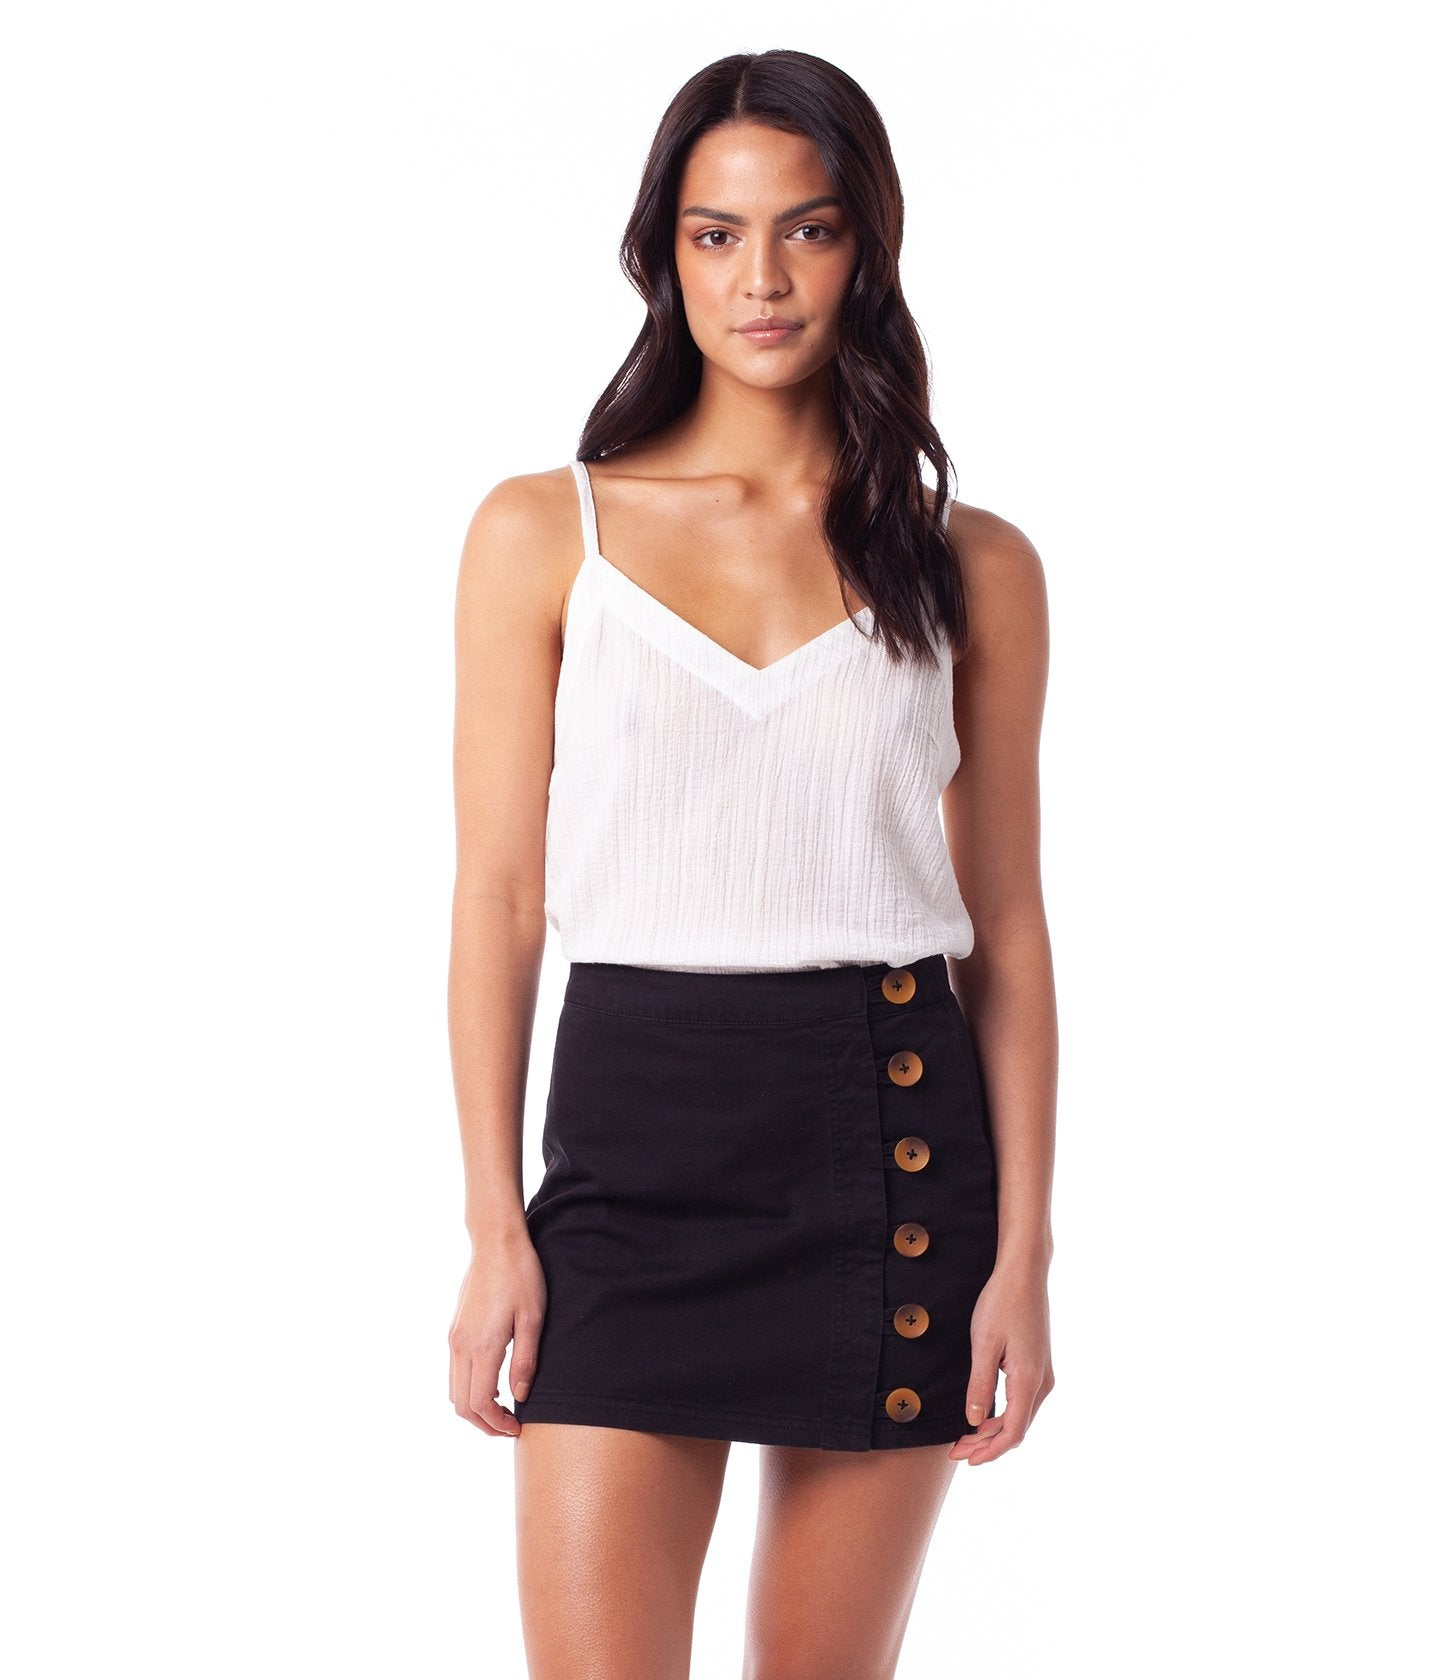 Rhythm Brooklyn Skirt Black